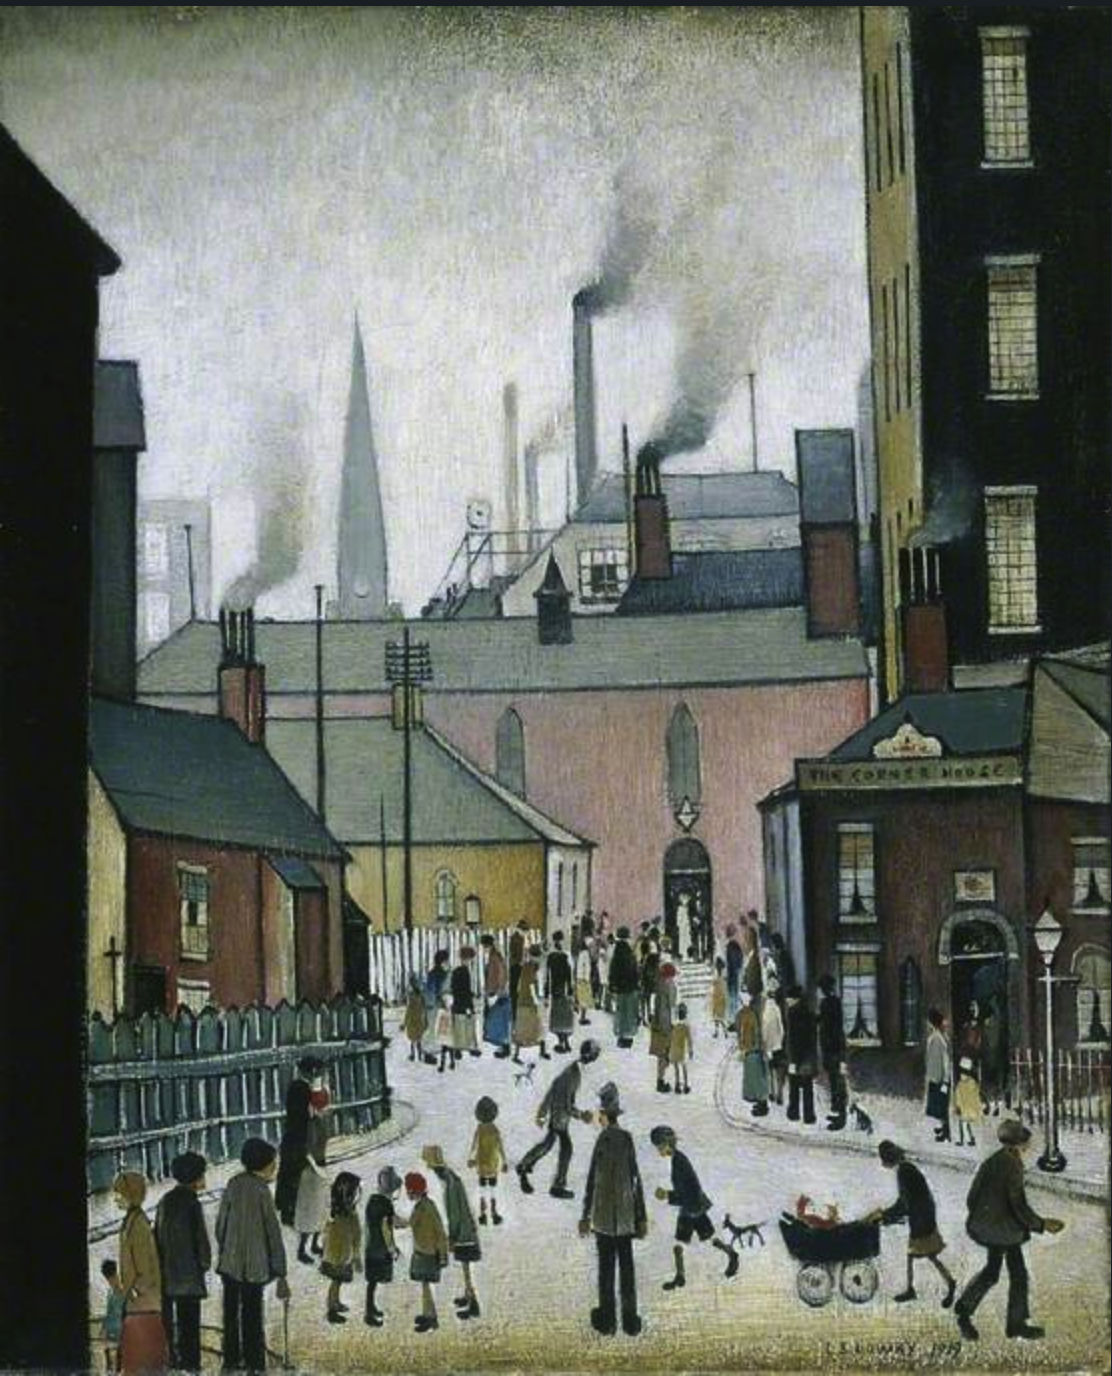 After the Wedding (1939) by Laurence Stephen Lowry (1887 - 1976), English artist.